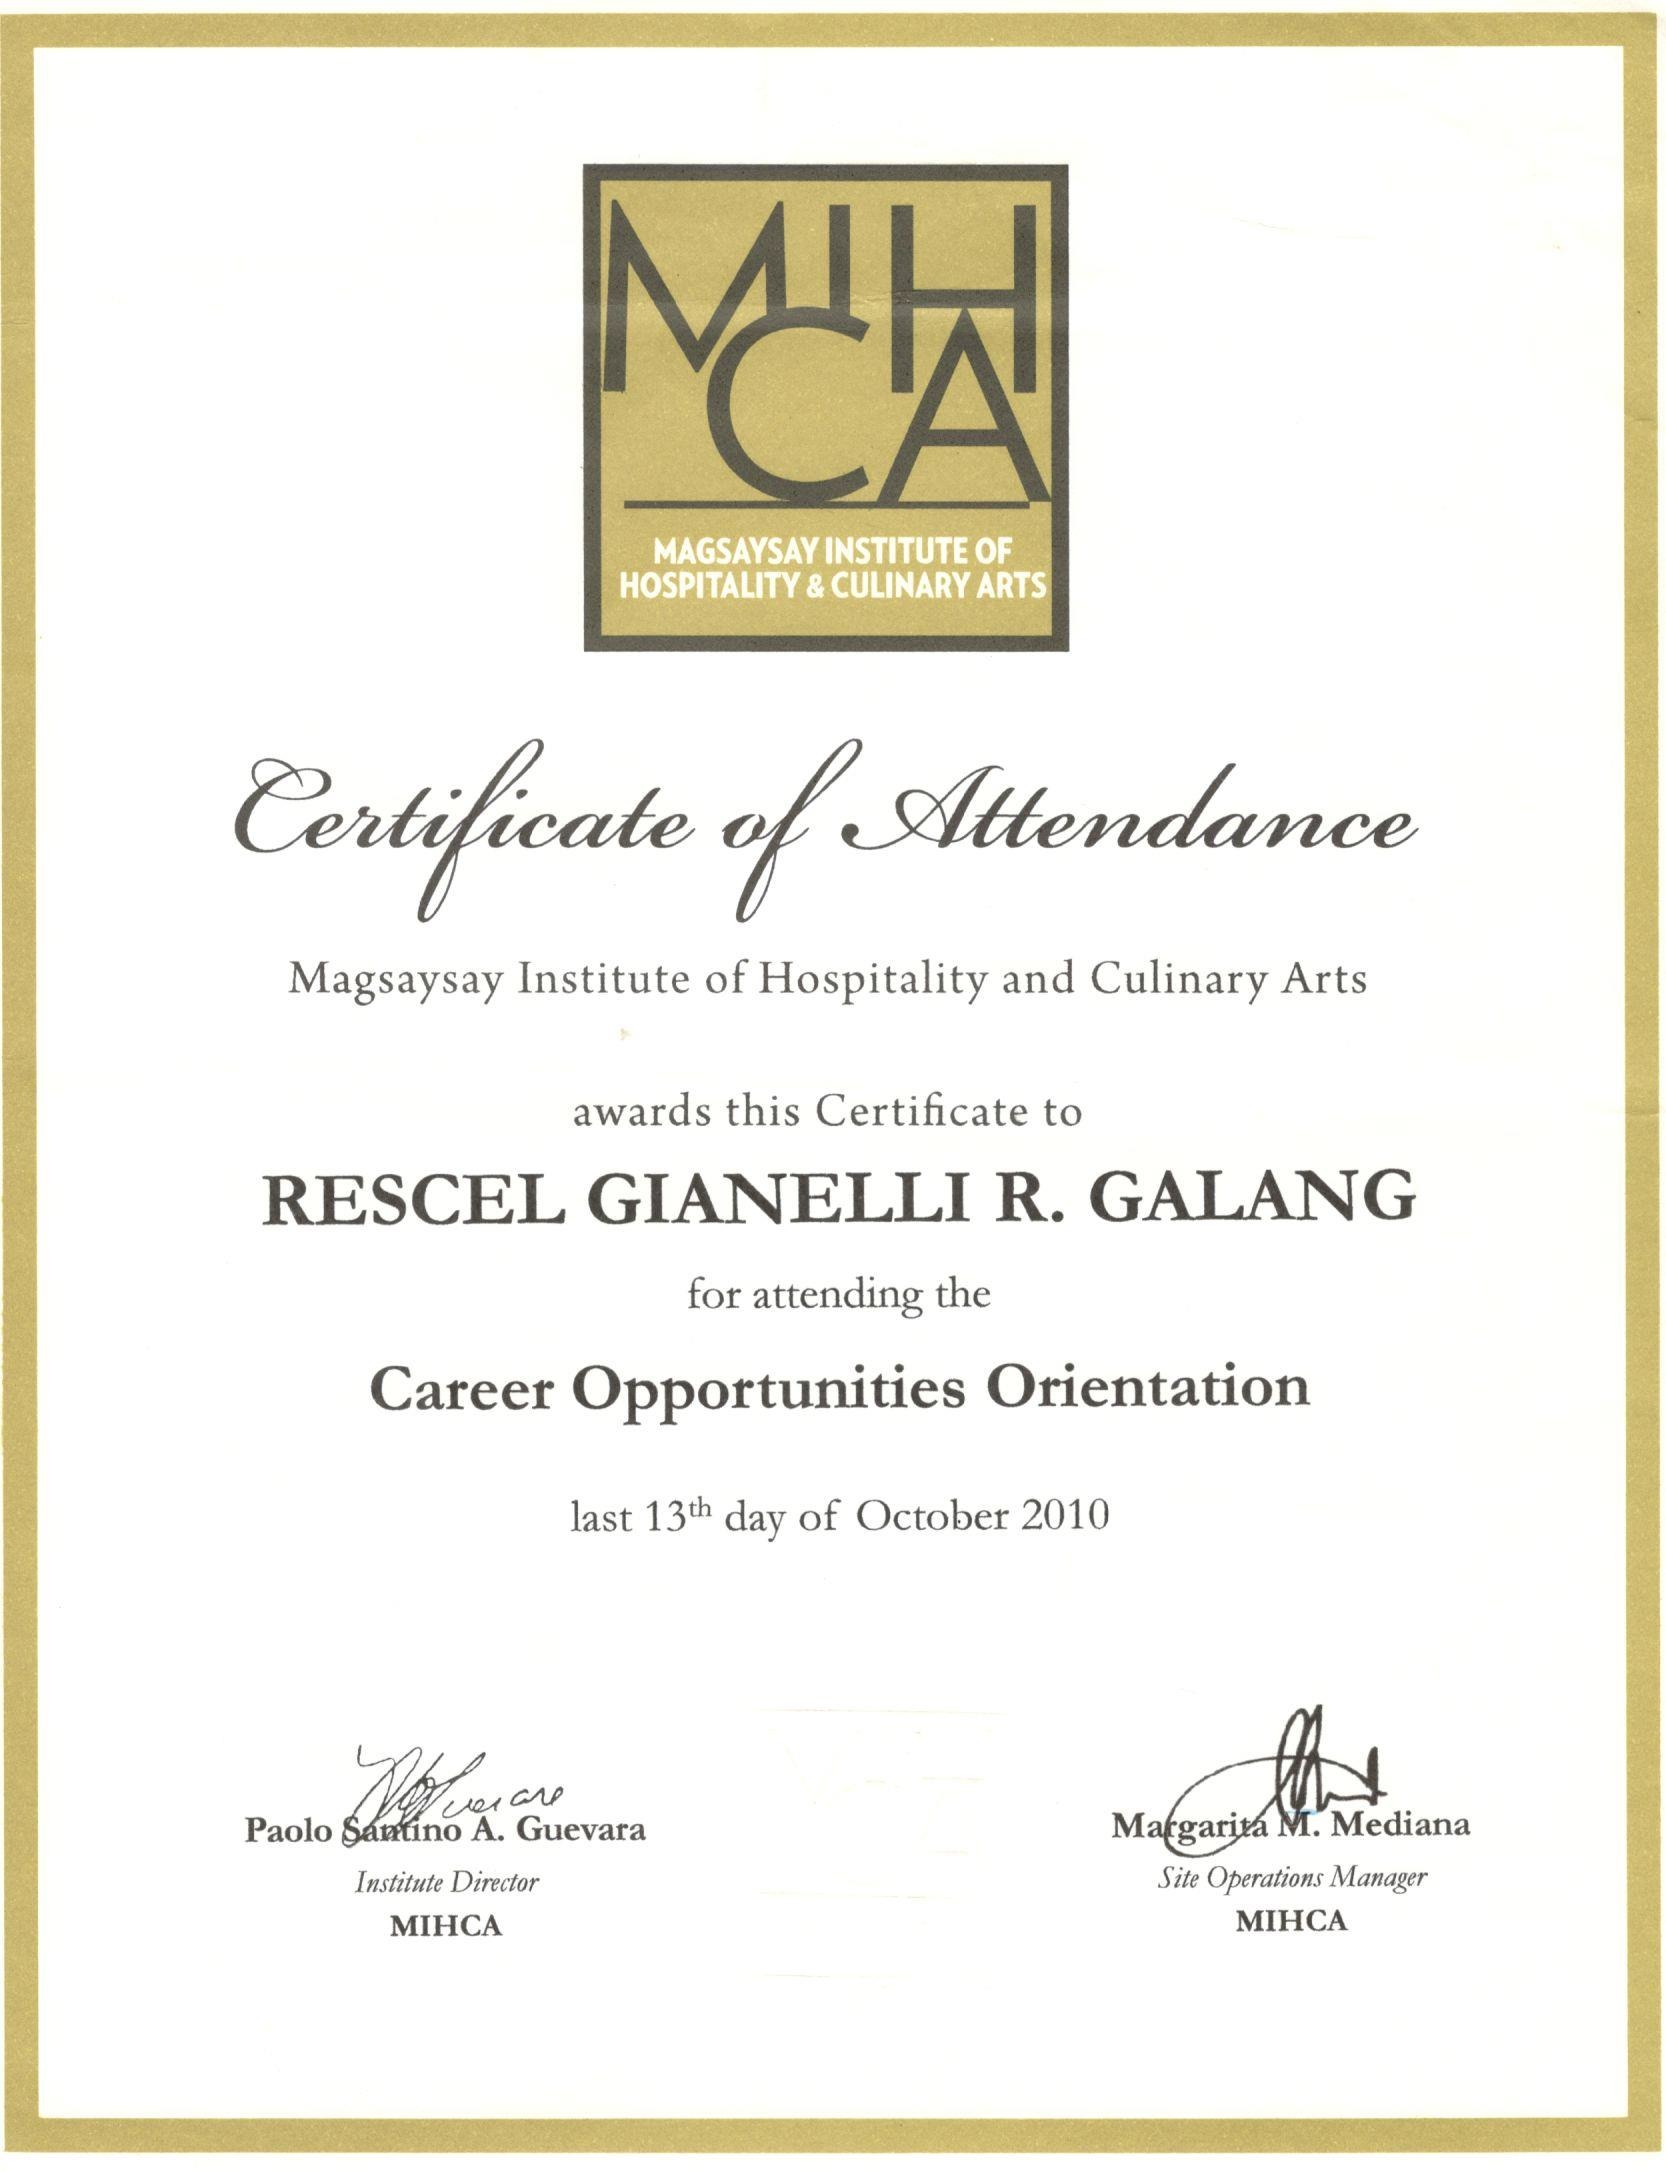 Rescel gianelli galang bayt career opportunities orientation micah certificate 1betcityfo Images